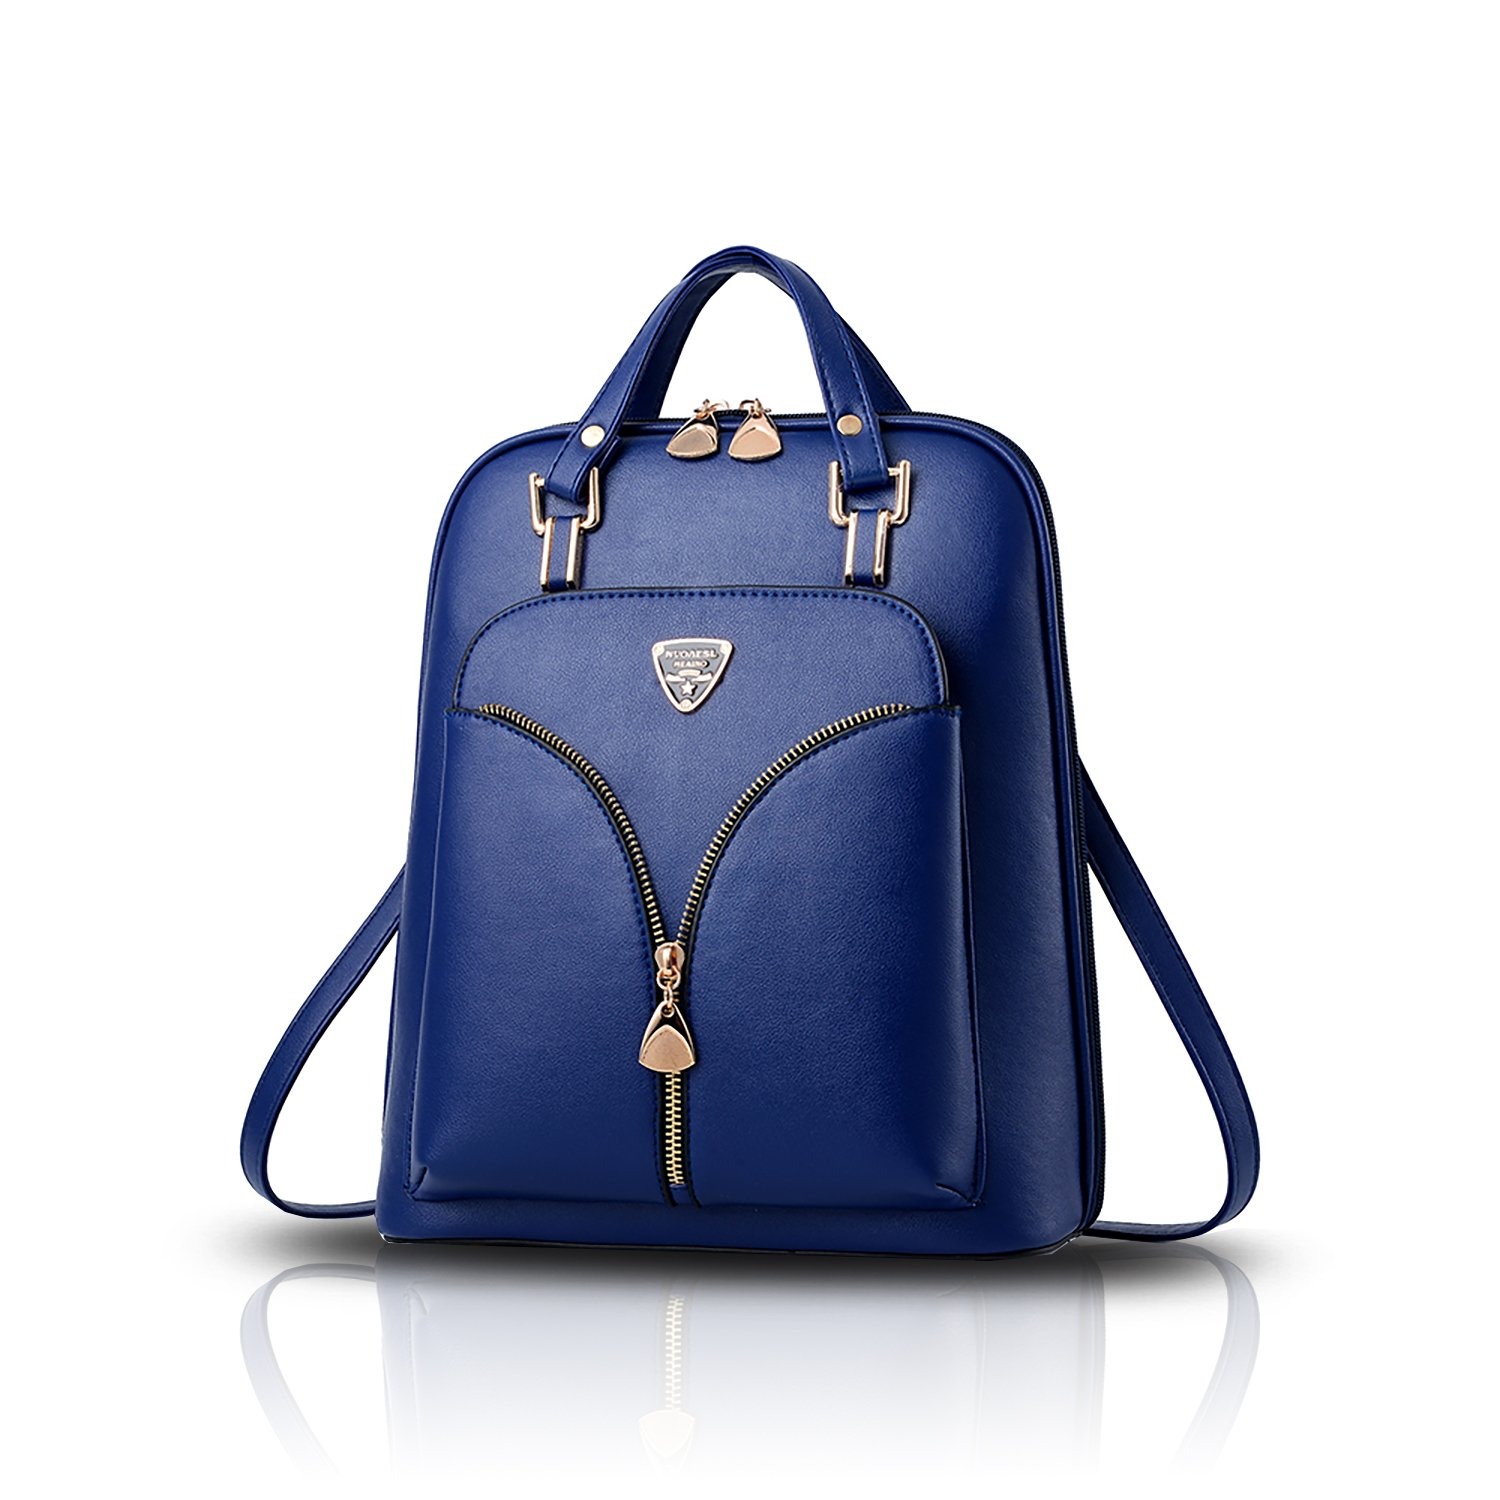 Sunas 2017 New Shoulder Bag Women's Bag PU Student Fashion Tide Bag Personalized Leisure Travel Dual Purpose Backpack (Navy Blue)